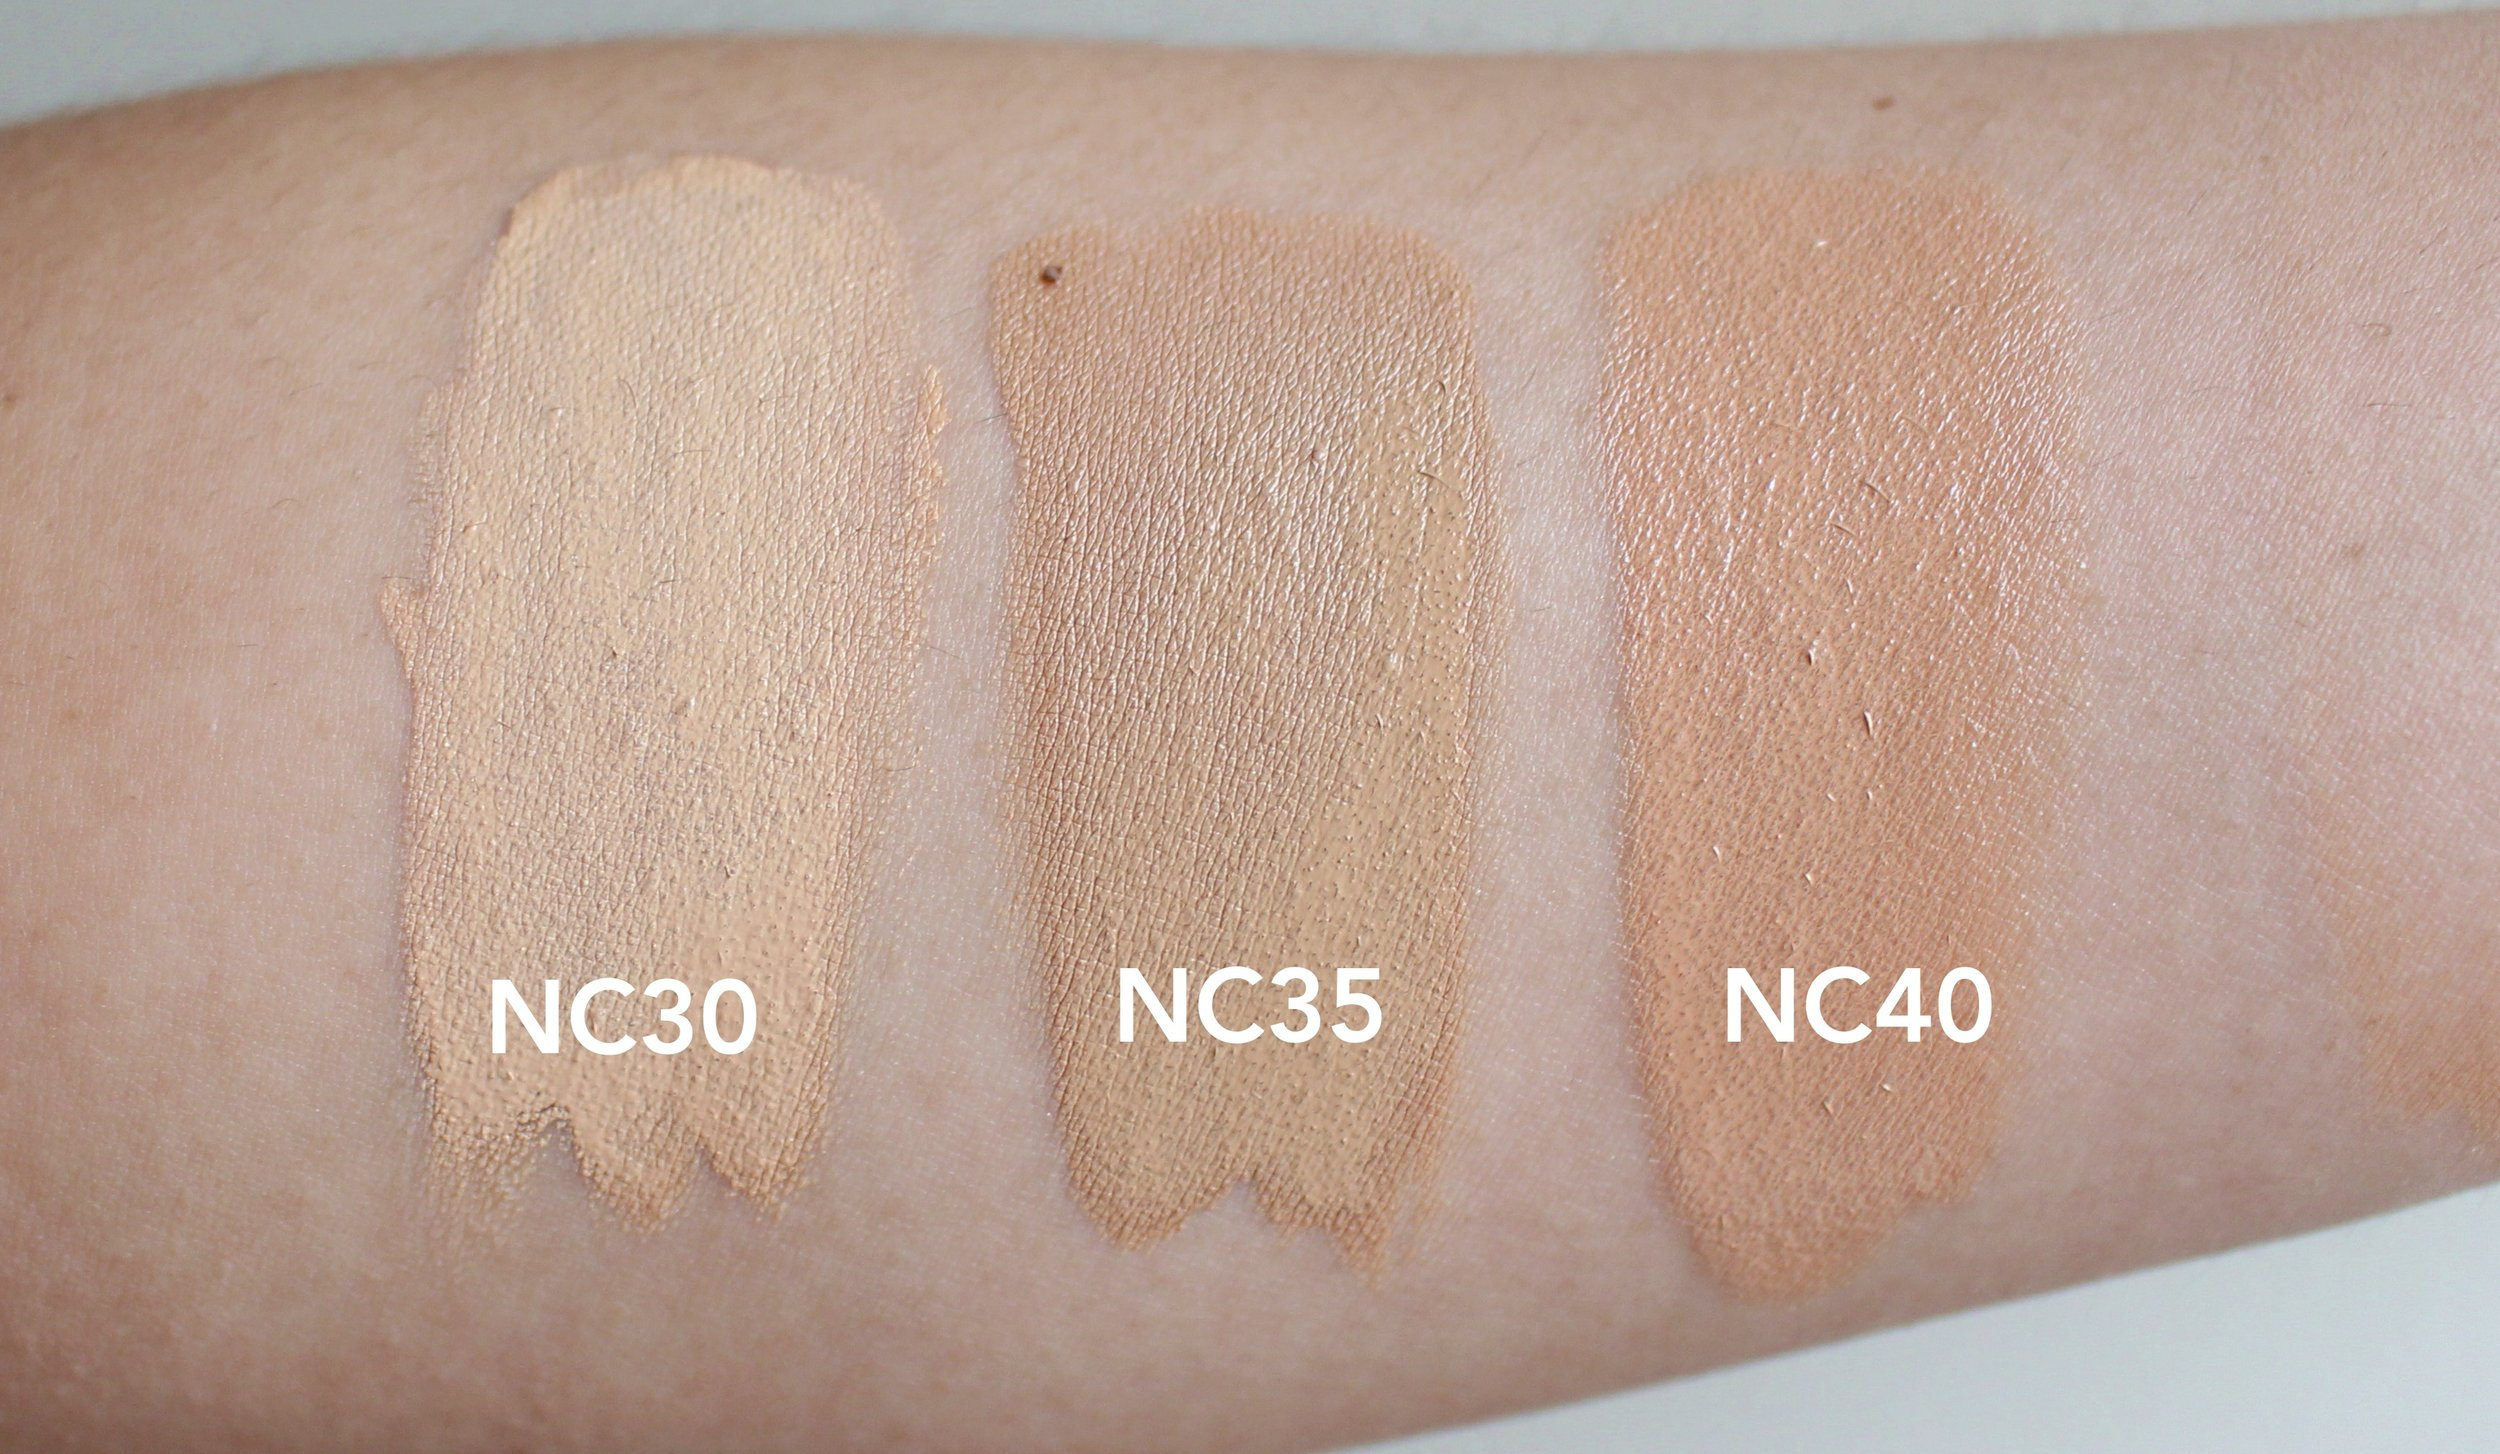 Editor's note: These are swatched on NC35 skin. I use NC35 comfortably, NC30 is too light on me when blended. - Liz